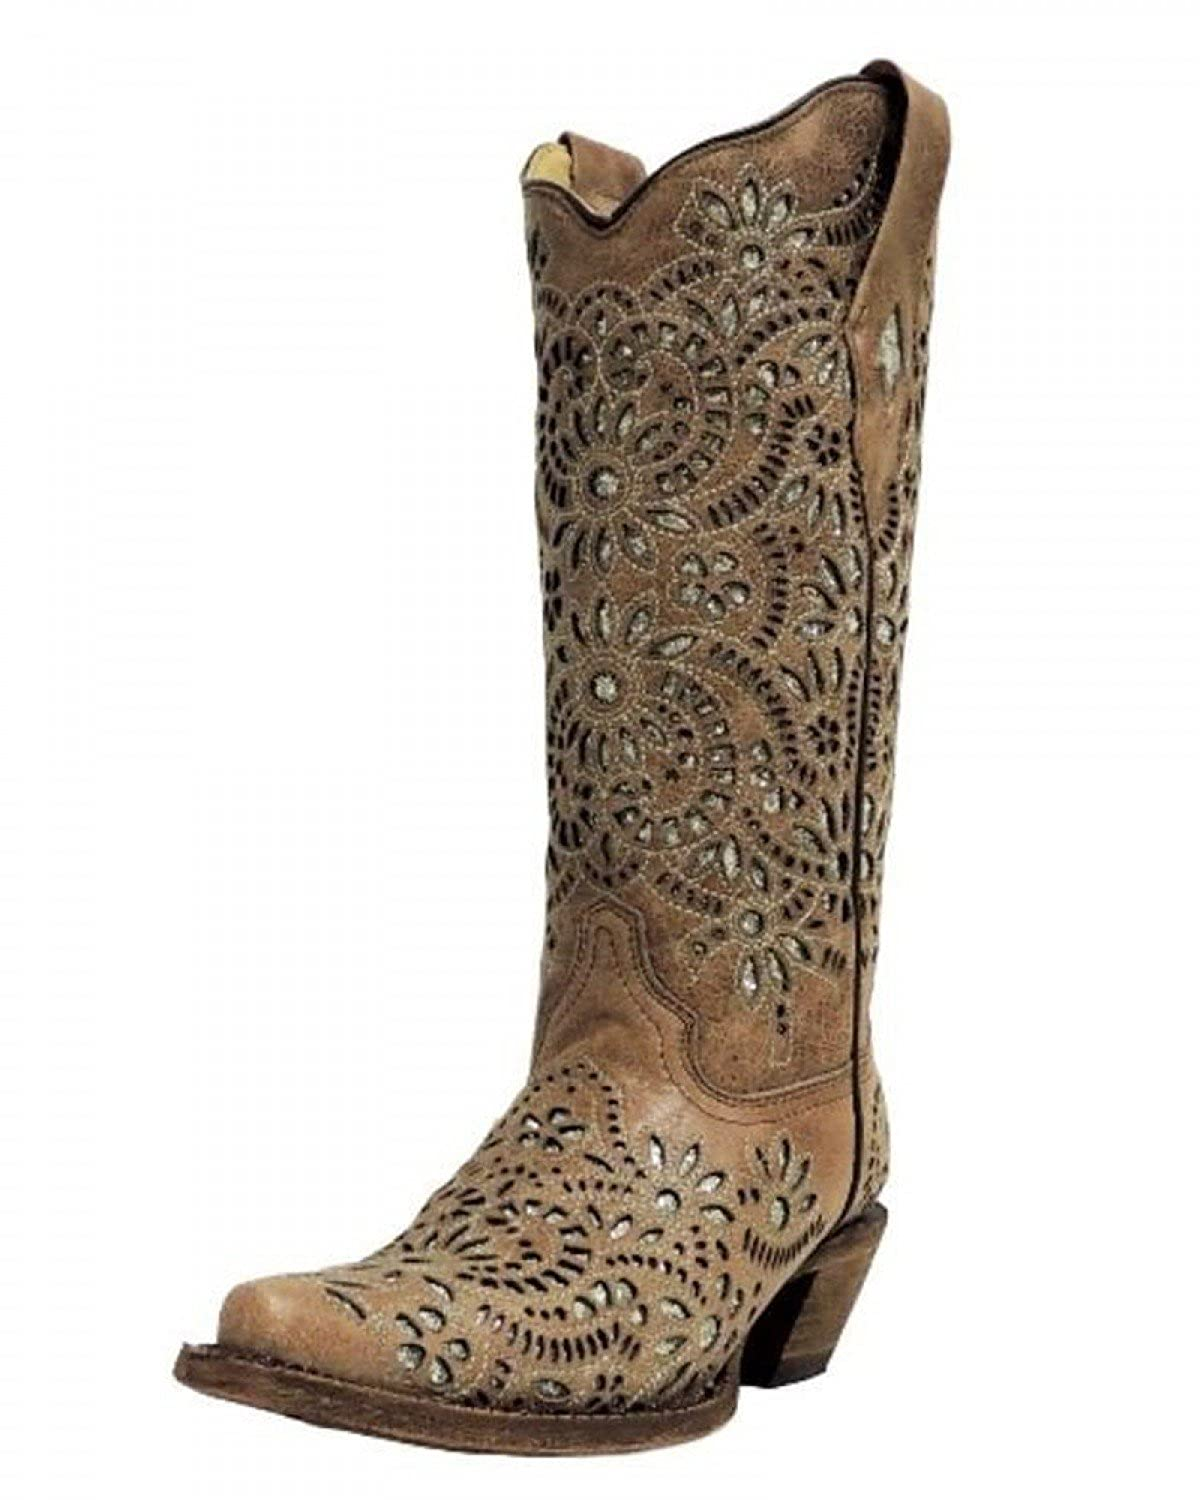 CORRAL Women's Brown with Glitter Inlay and Embroidery Snip Toe Cowgirl Boots A3352 B071P6YT3Z 9.5 B(M) US